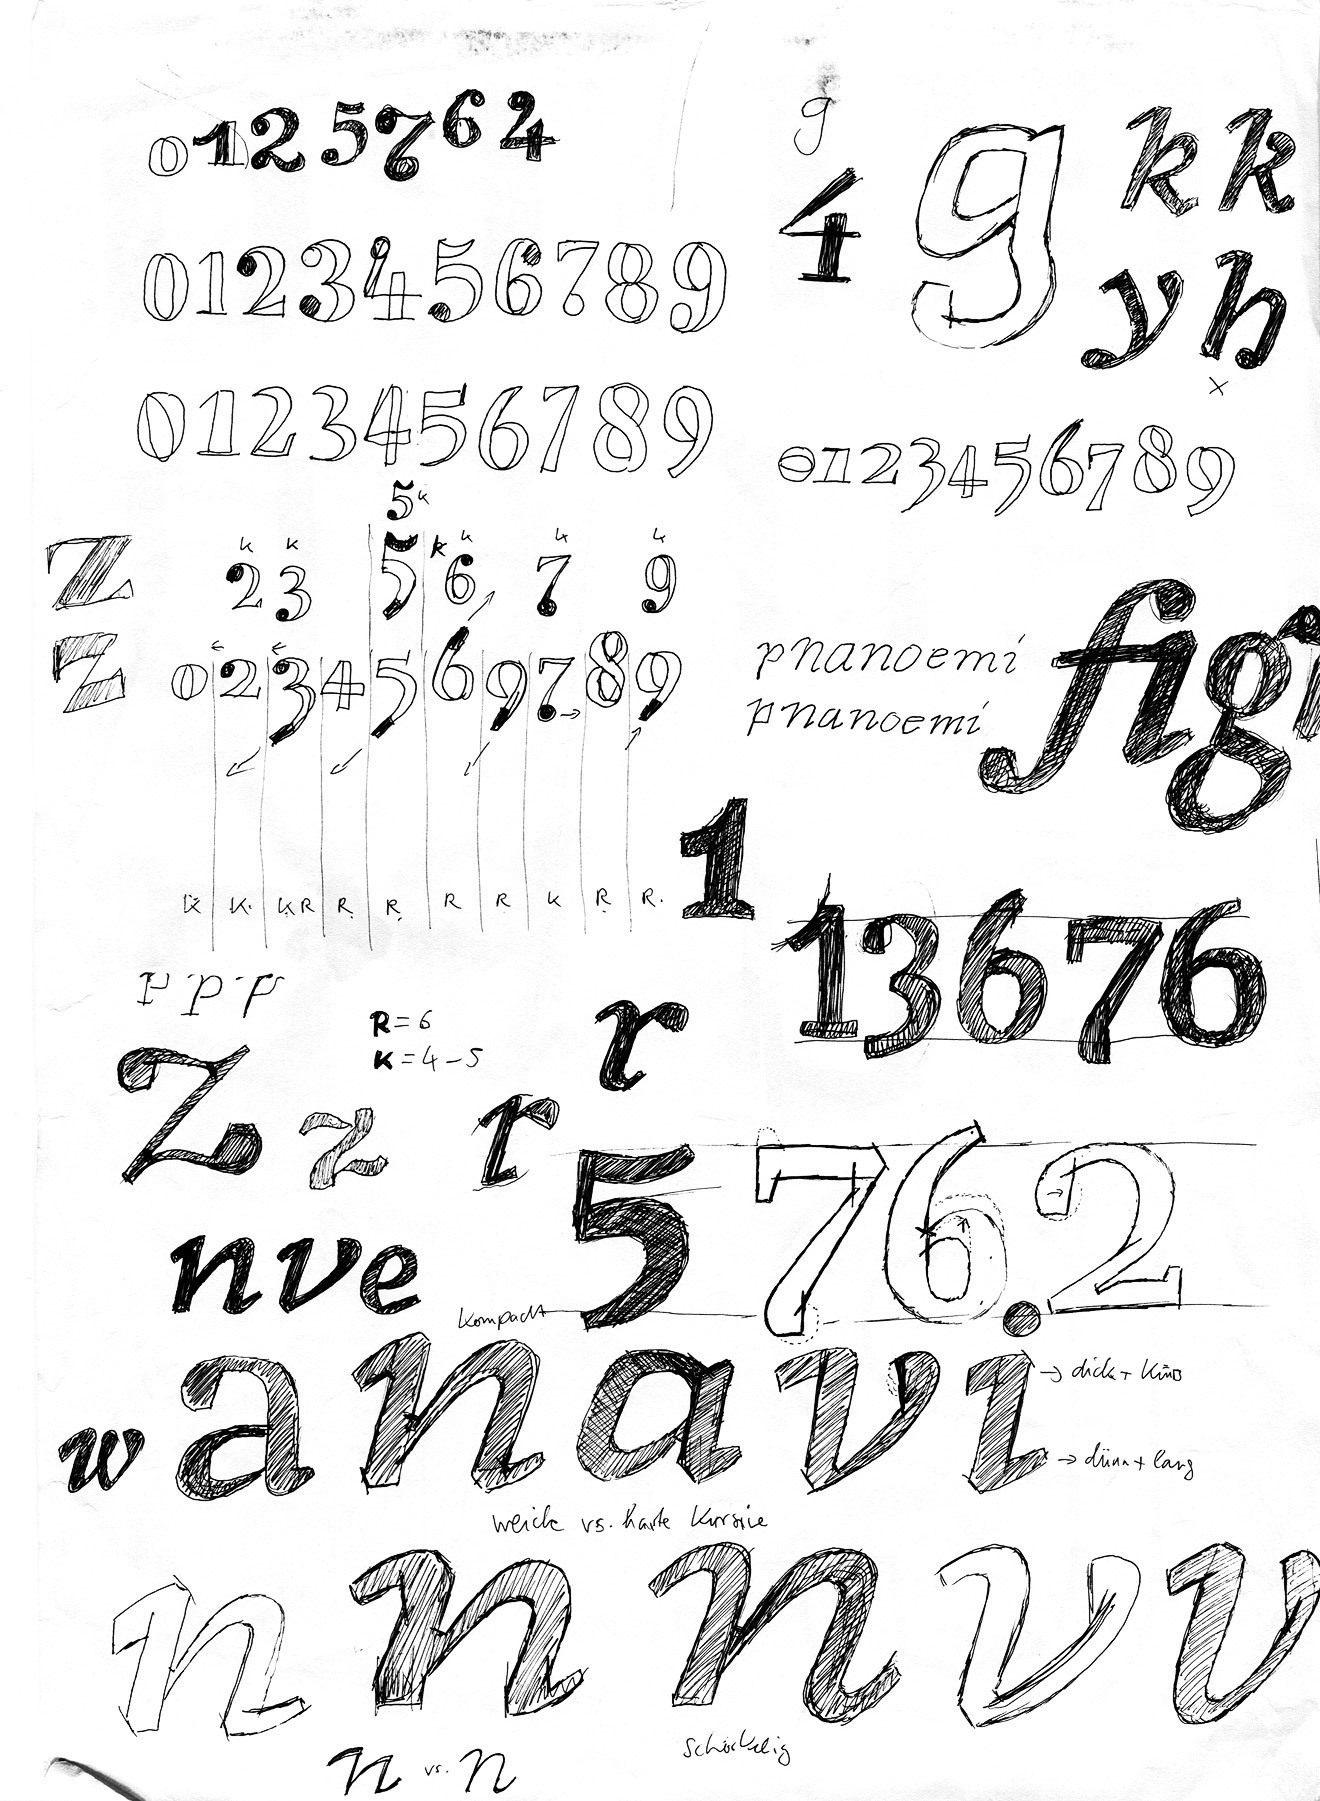 The product of a train journey from Kiel to the middle of Germany. The figures combine the dynamic shapes and open apertures of Renaissance faces with the static, closed model of Classicism. The aim for the letters was to meld the sharp, calligraphic italic shapes with a rounder and softer approach.